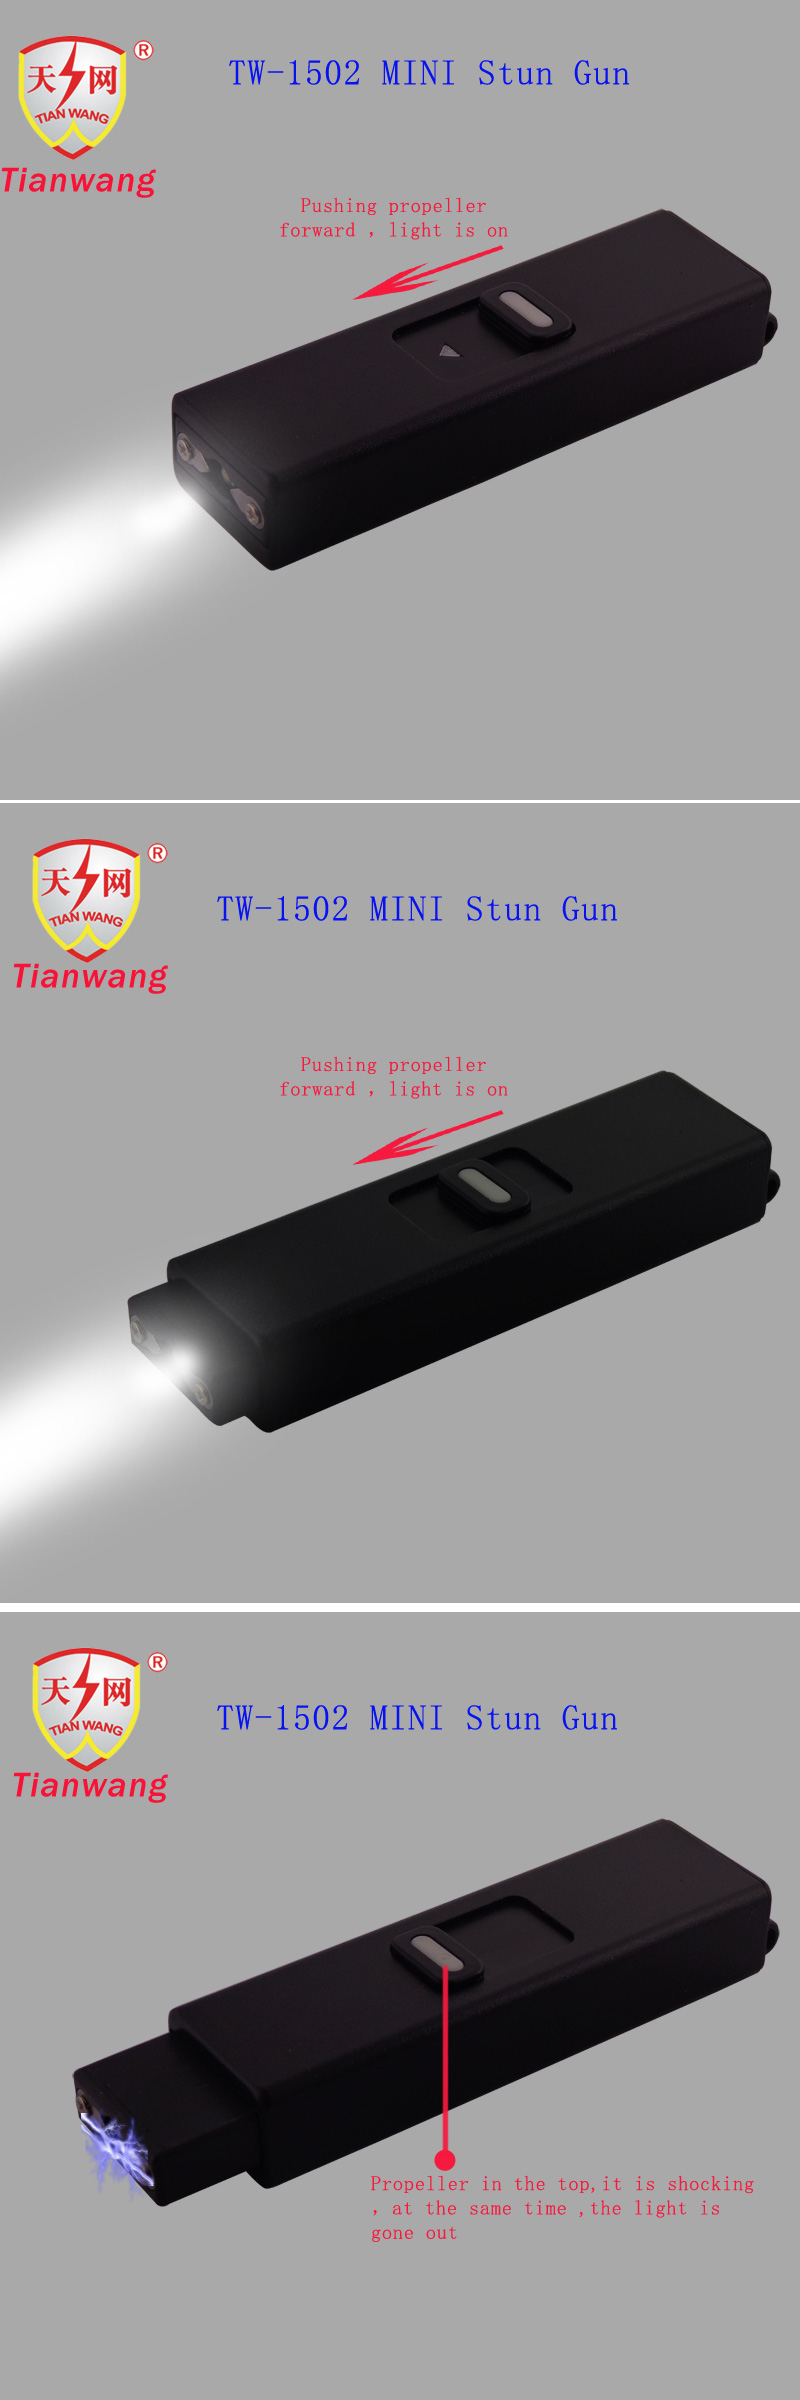 Wholesale Slef Defense Product Stun Gun